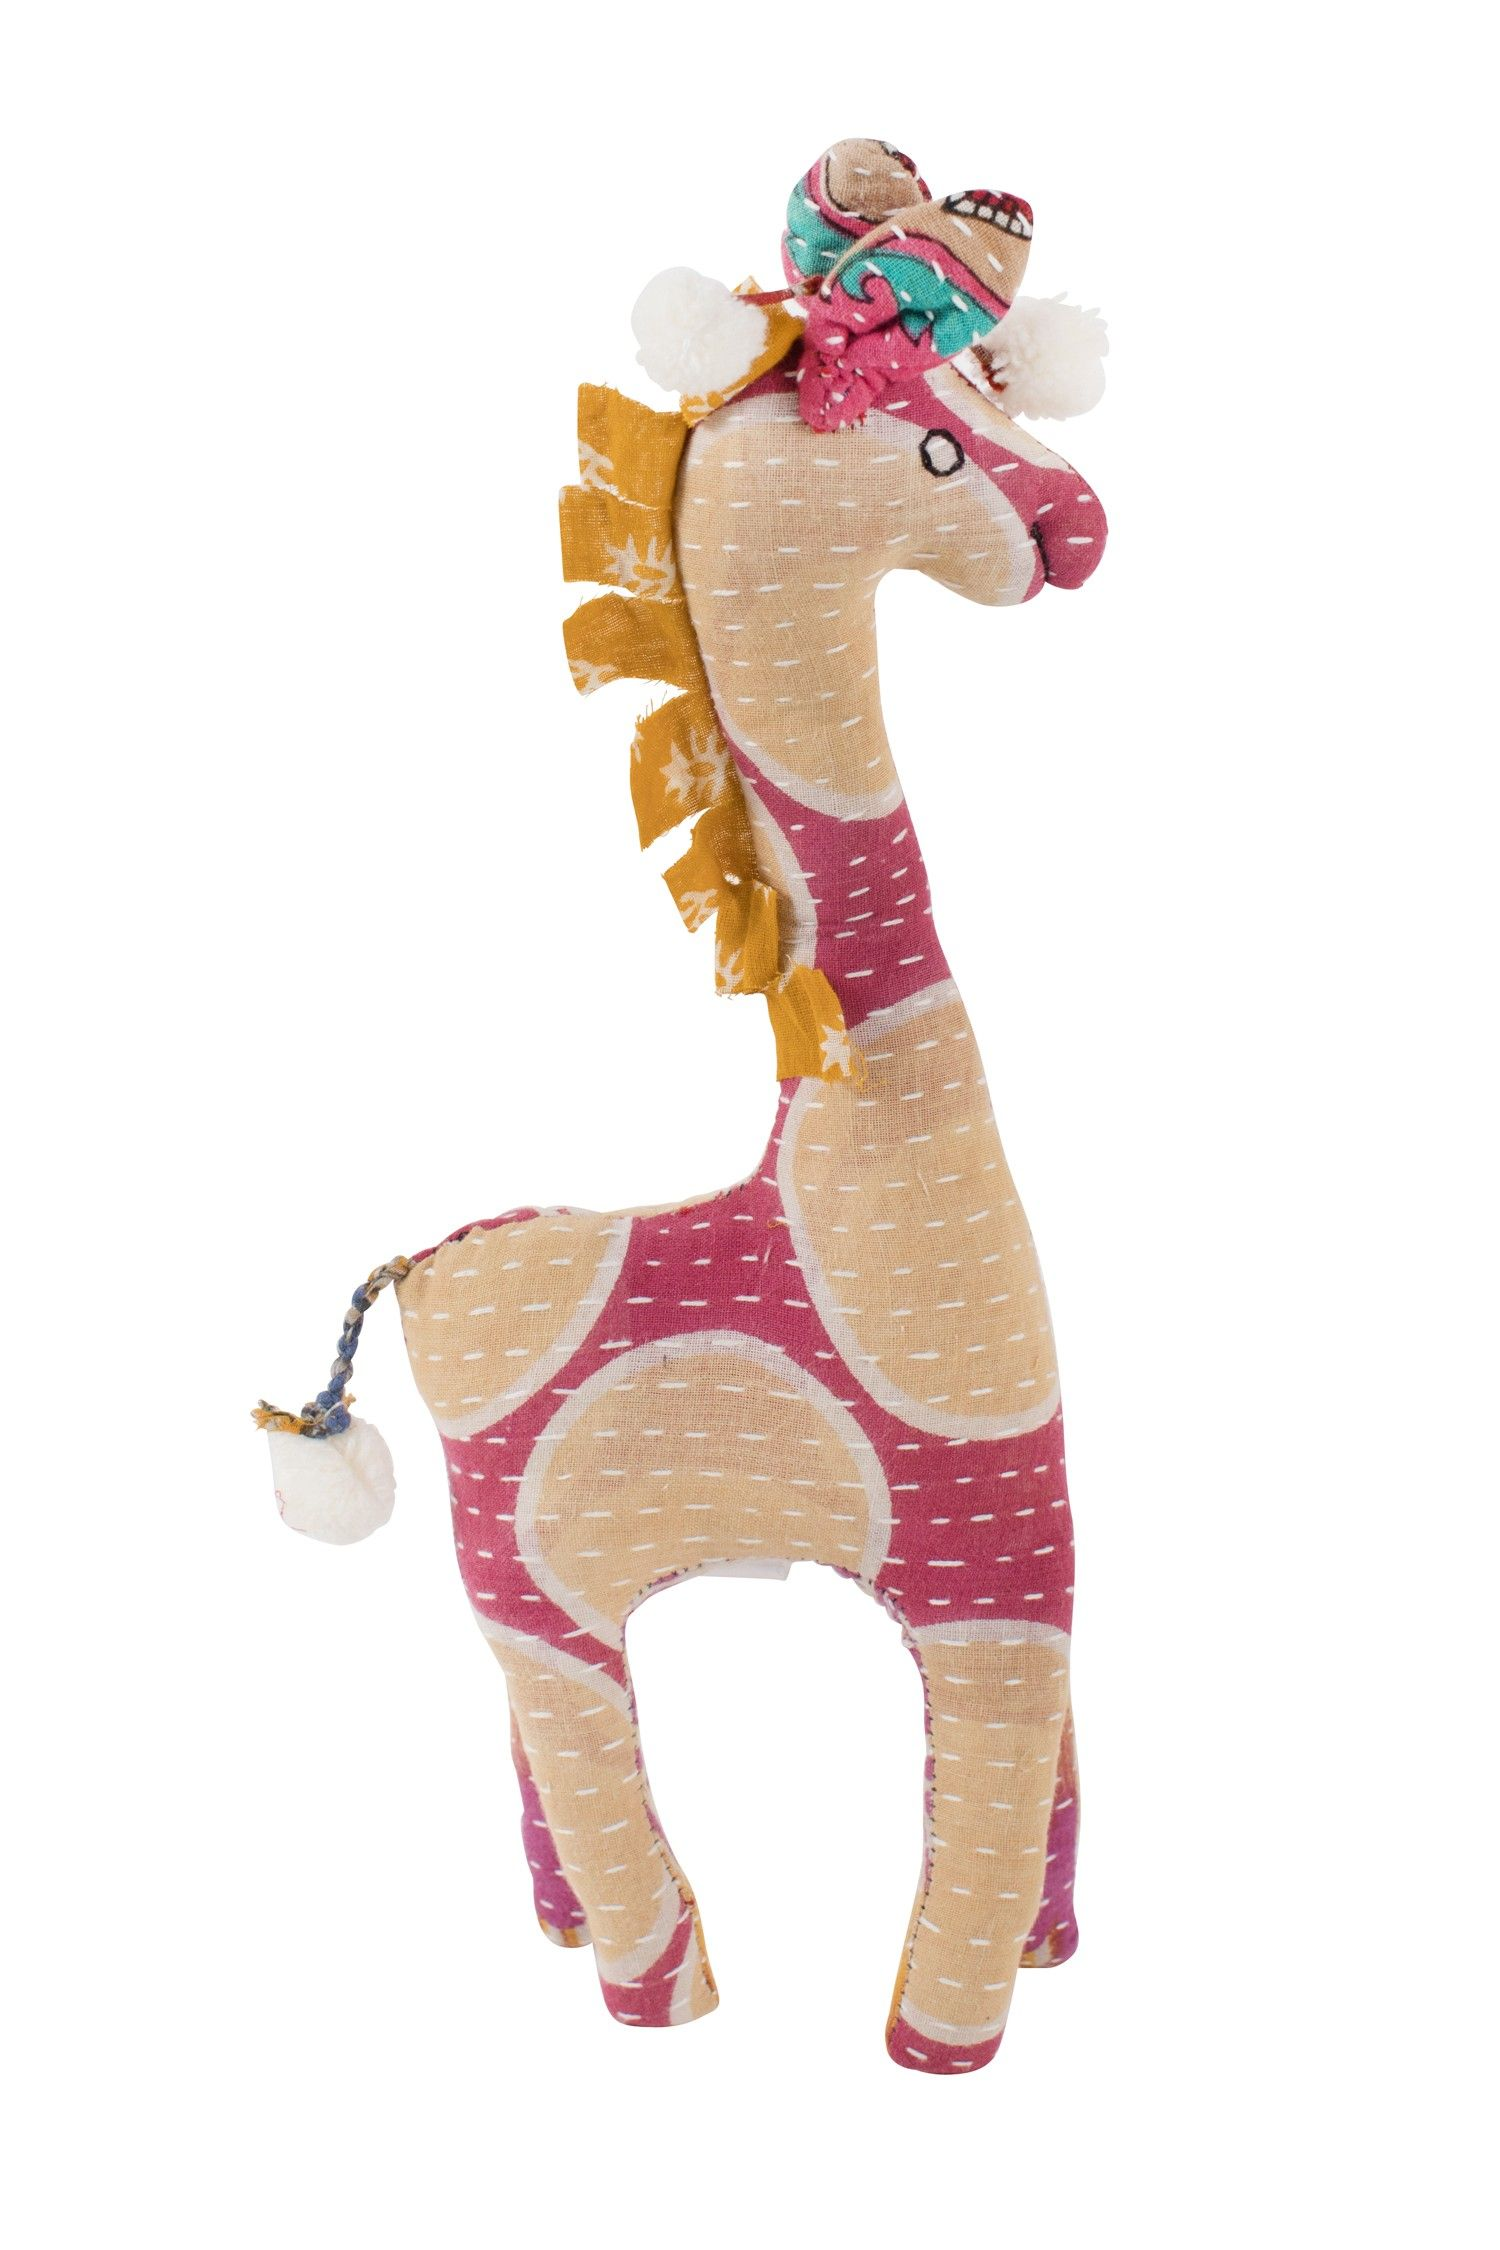 This sweet stuffed Giraffe features Kantha stitching and